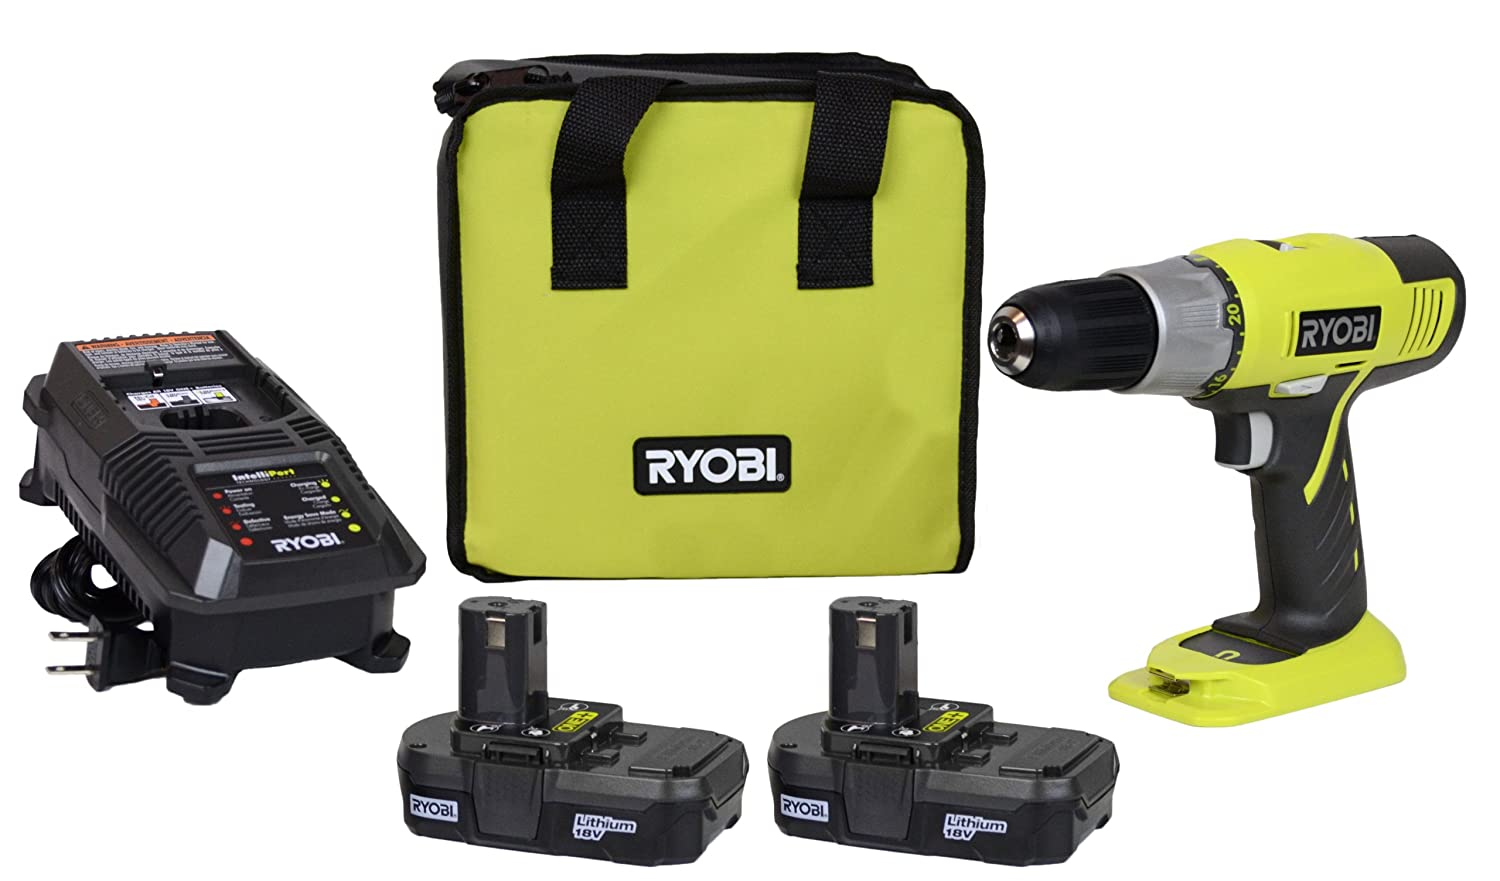 Ryobi P817 (A Drill with Great Specs)